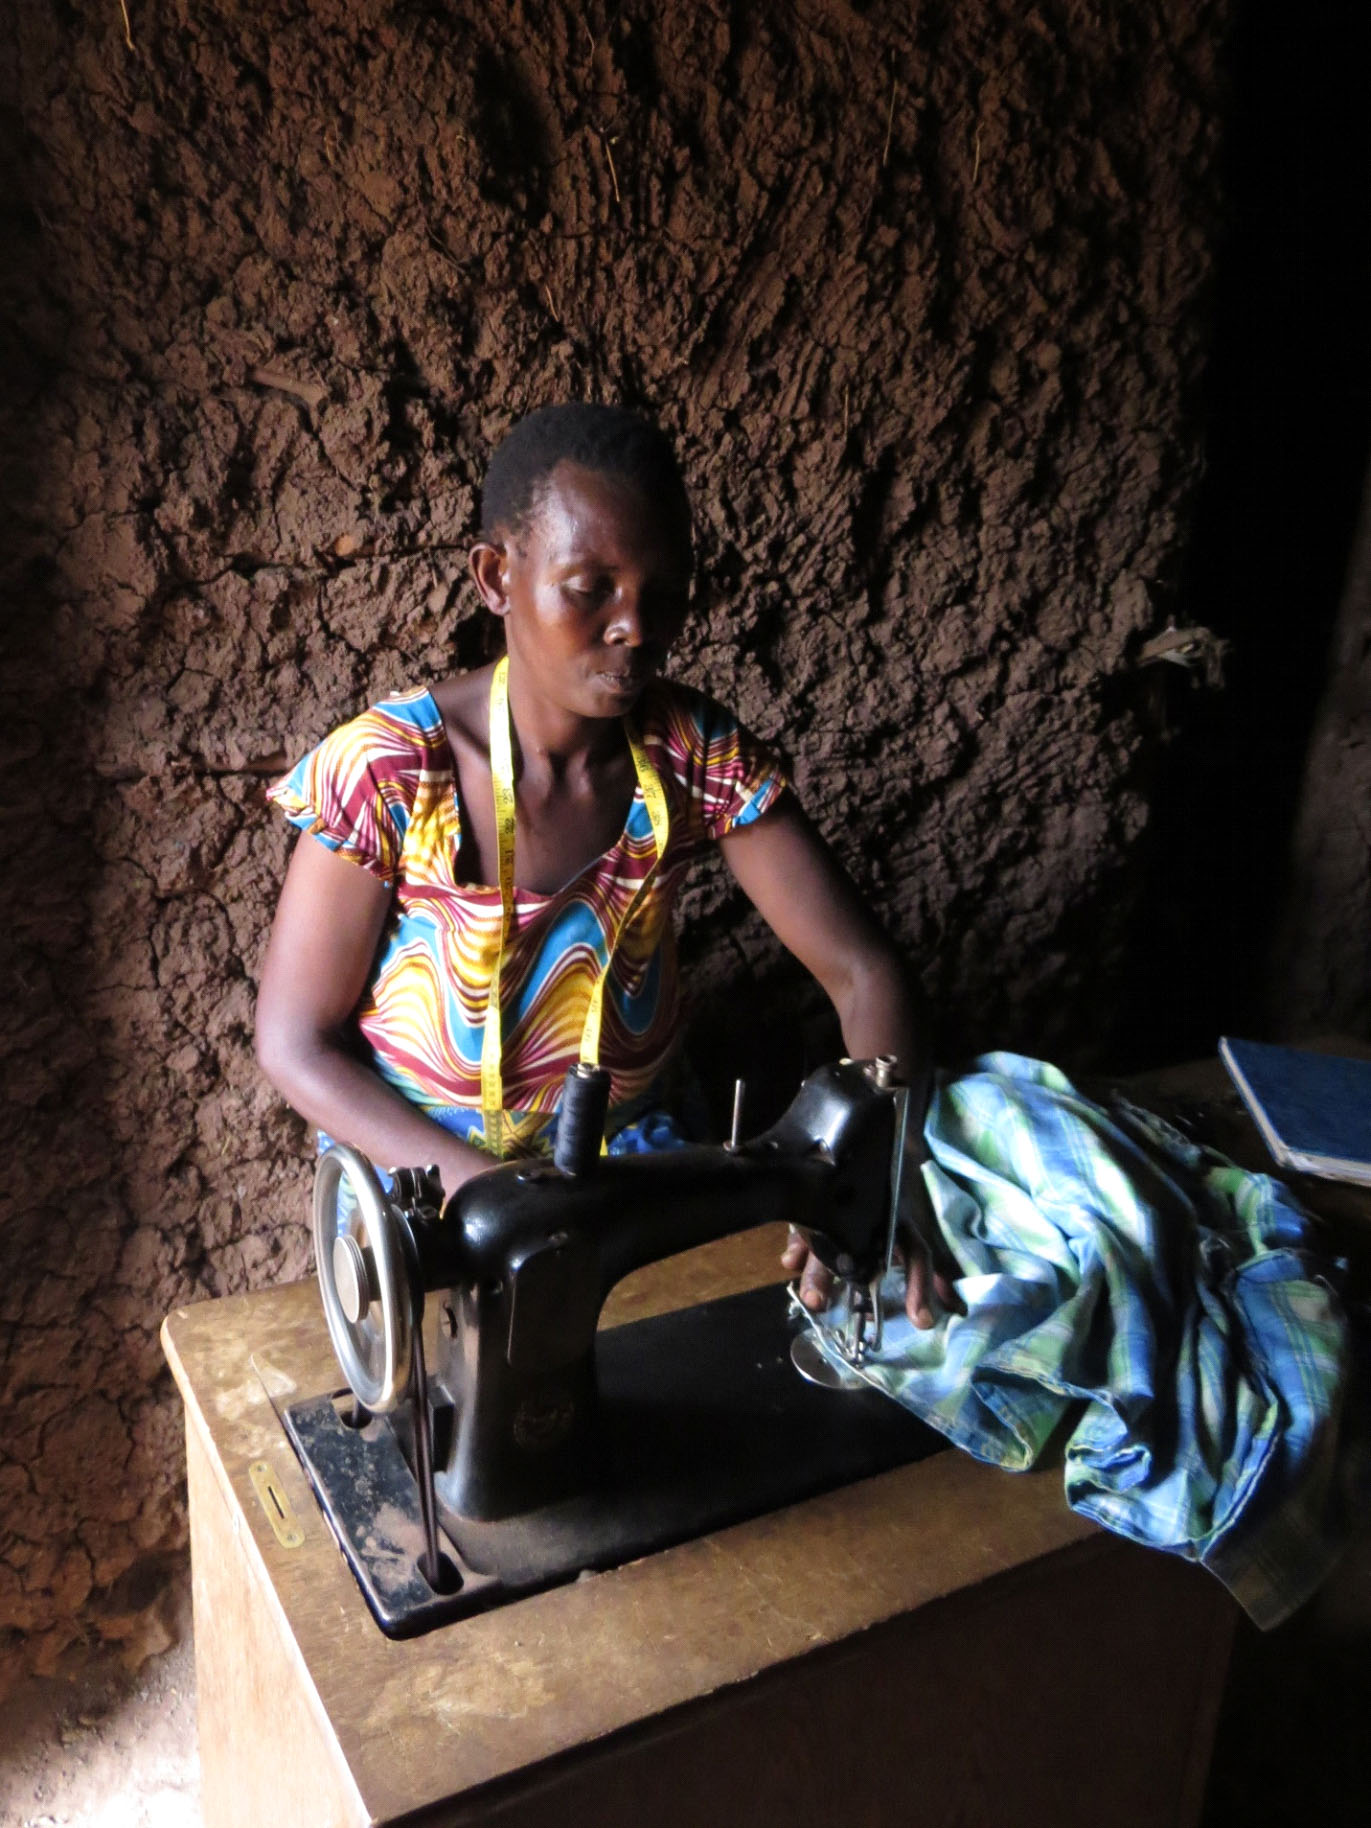 Lient of Concern Worldwide sewing clothes in Rwanda